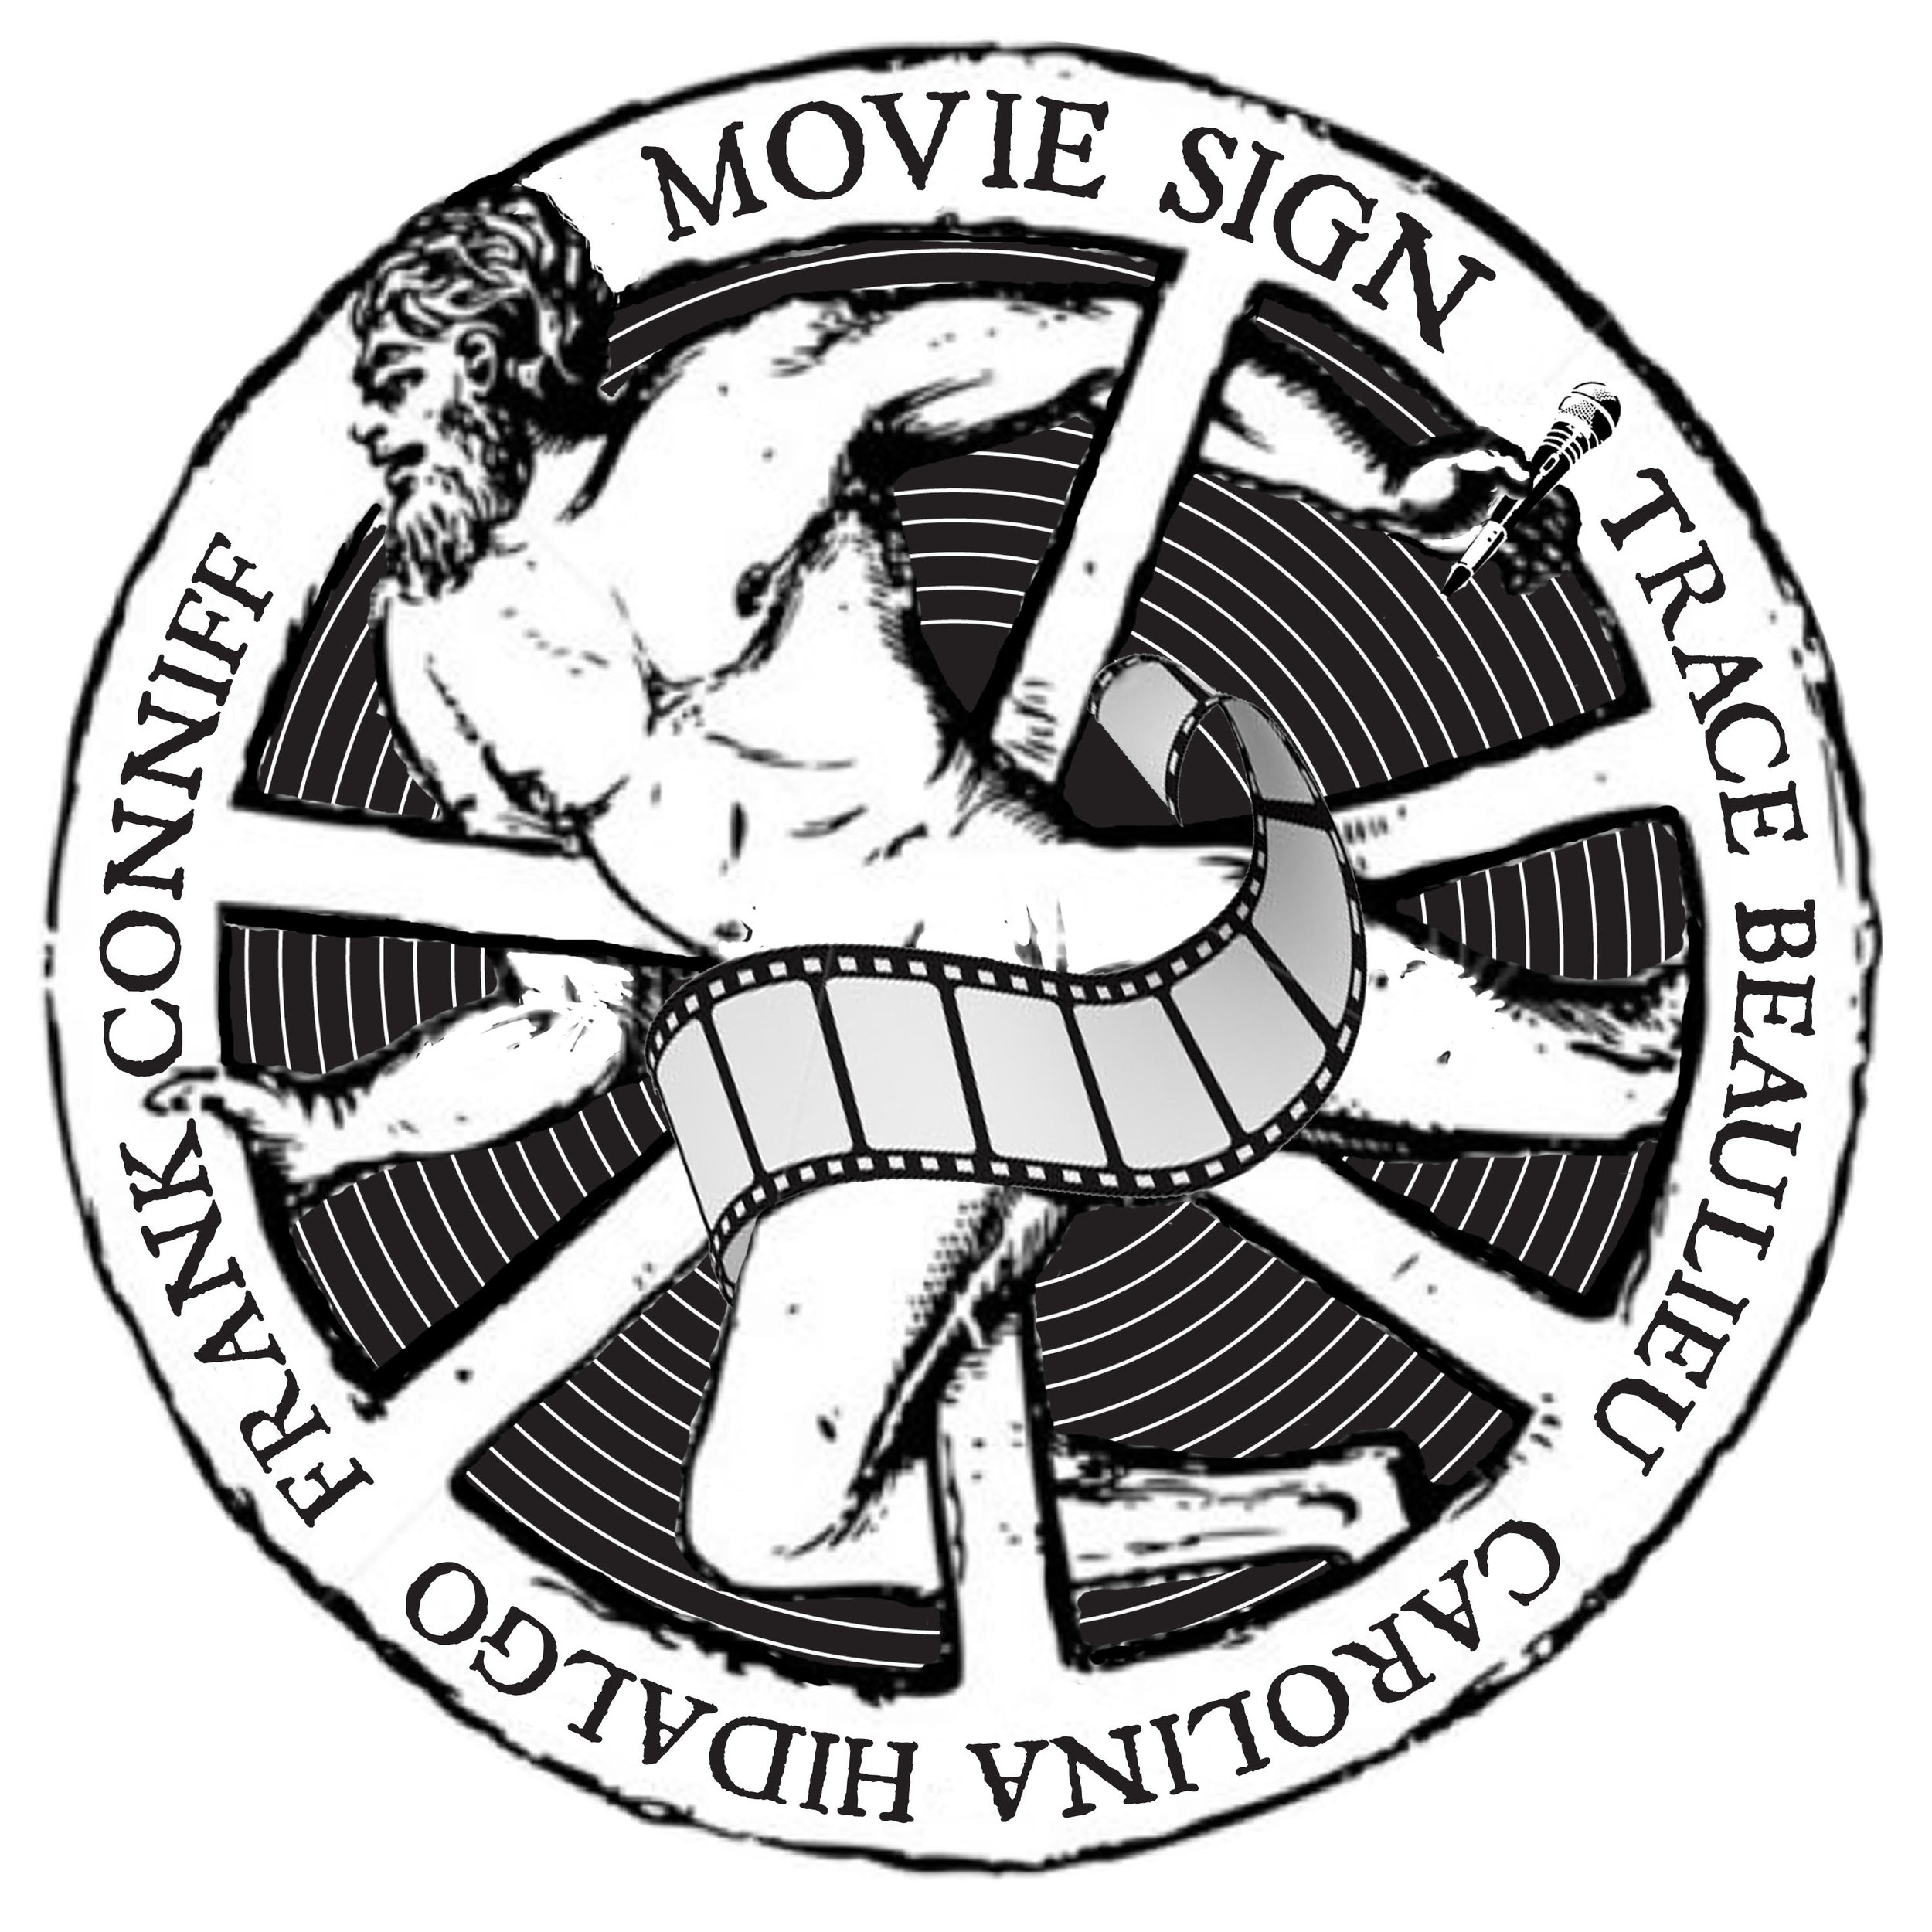 moviesignlogo.jpg